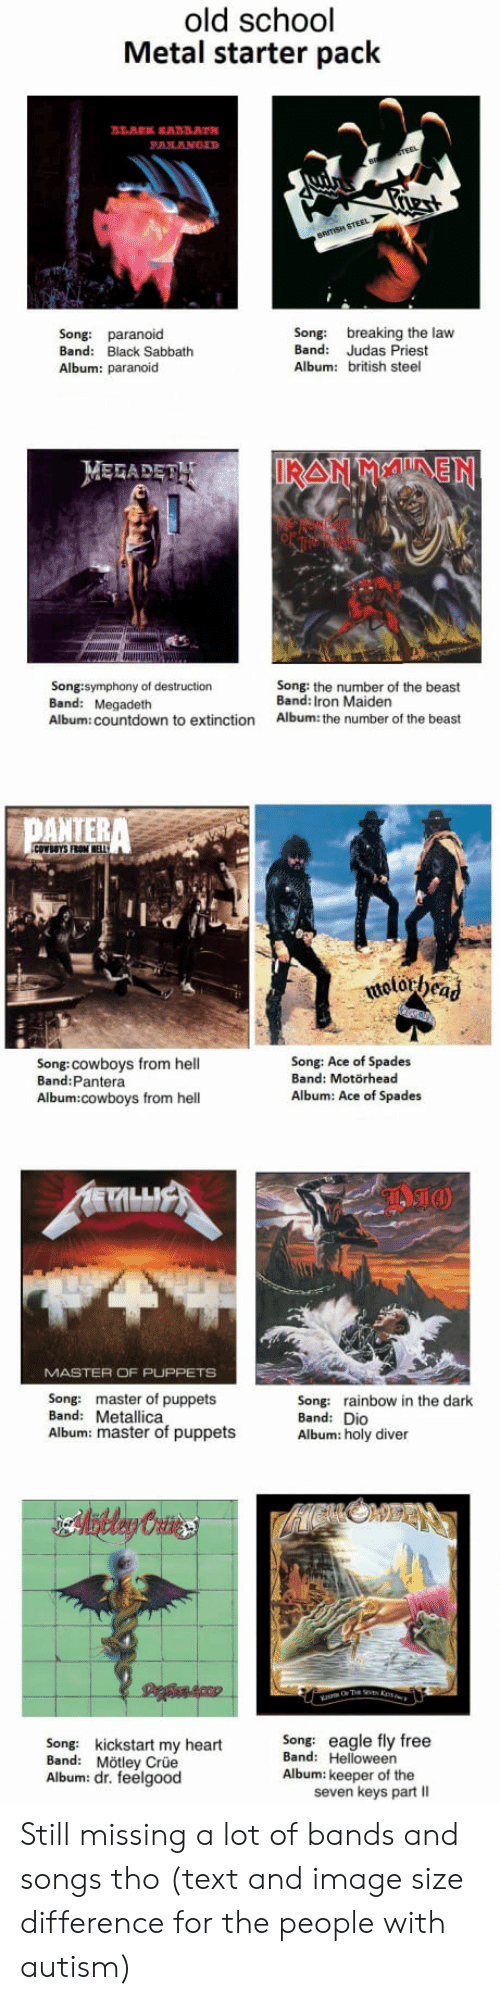 sabbath: old school  Metal starter pack  Song: paranoid  Band: Black Sabbath  Album: paranoid  Song: breaking the law  Band: Judas Priest  Album: british steel  MEFADET  Song:symphony of destruction  Band: Megadeth  Album: countdown to extinction  Song: the number of the beast  Band: Iron Maiden  Album: the number of the beast  PATERA  Song:cowboys from hell  Band:Pantera  Song: Ace of Spades  Band: Motörhead  Album: Ace of Spades  Album:cowboys from hell  MASTER OF PUPPETS  Song: master of puppets  Band: Metallica  Album: master of puppets  Song: rainbow in the dark  Band: Dio  Album: holy diver  Song: kickstart my heartSong: eagle fly free  Band: Mötley Crüe  Album: dr. feelgood  Band: Helloween  Album: keeper of the  seven keys part II Still missing a lot of bands and songs tho (text and image size difference for the people with autism)